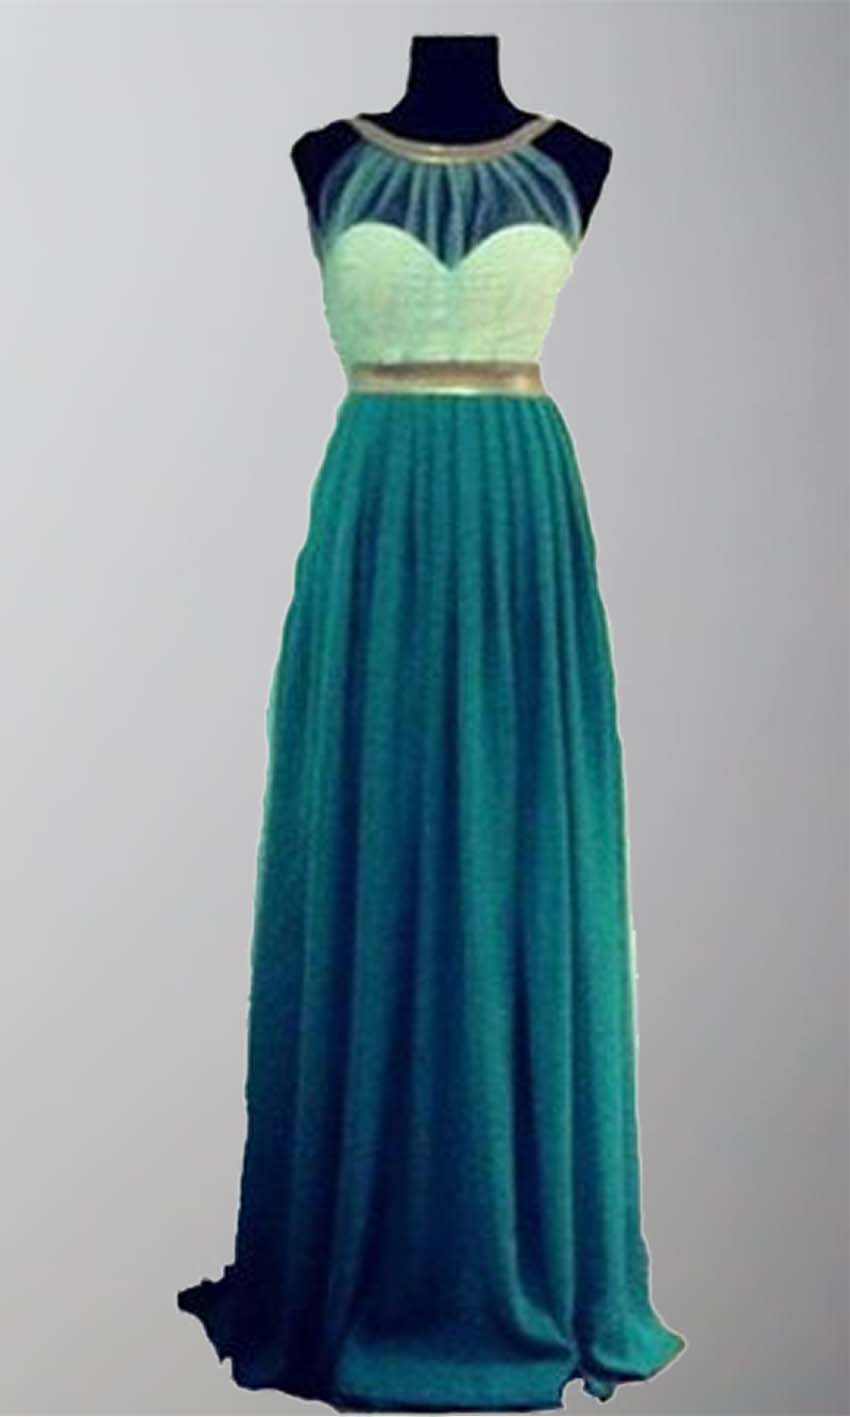 Green Sexy Backless Sheer Long Prom Dresses KSP311 [KSP311] - £94.00 : Cheap Prom Dresses Uk, Bridesmaid Dresses, 2014 Prom & Evening Dresses, Look for cheap elegant prom dresses 2014, cocktail gowns, or dresses for special occasions? kissprom.co.uk offers various bridesmaid dresses, evening dress, free shipping to UK etc.